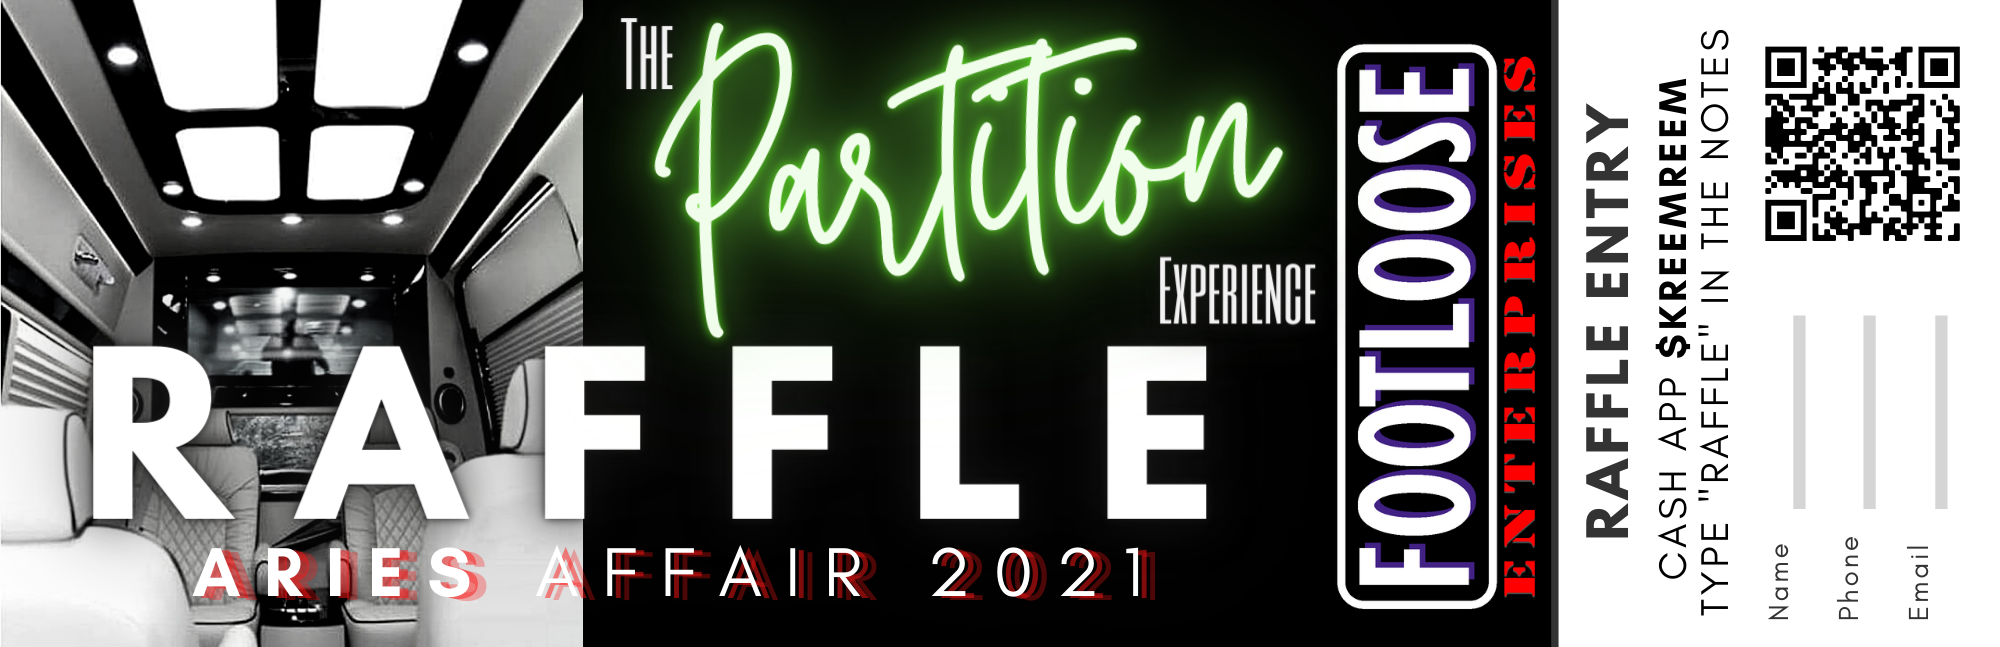 The Partition Experience Raffle 2